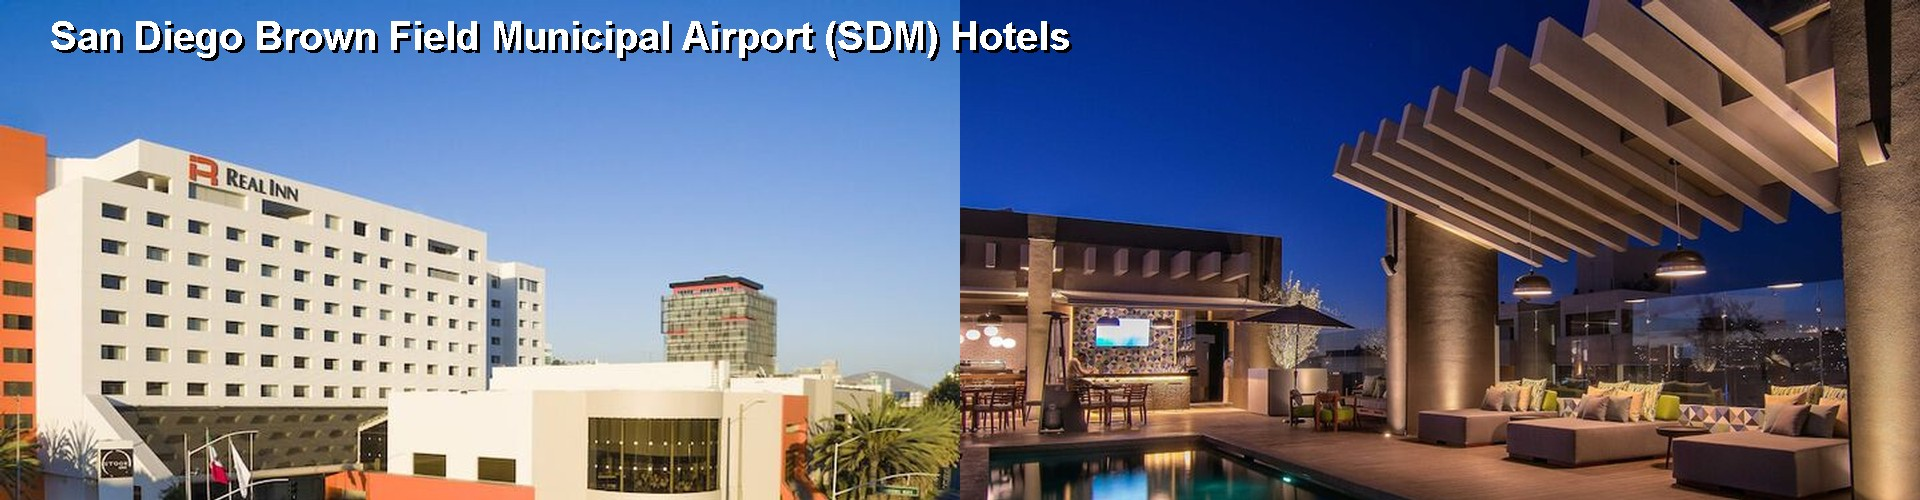 5 Best Hotels near San Diego Brown Field Municipal Airport (SDM)